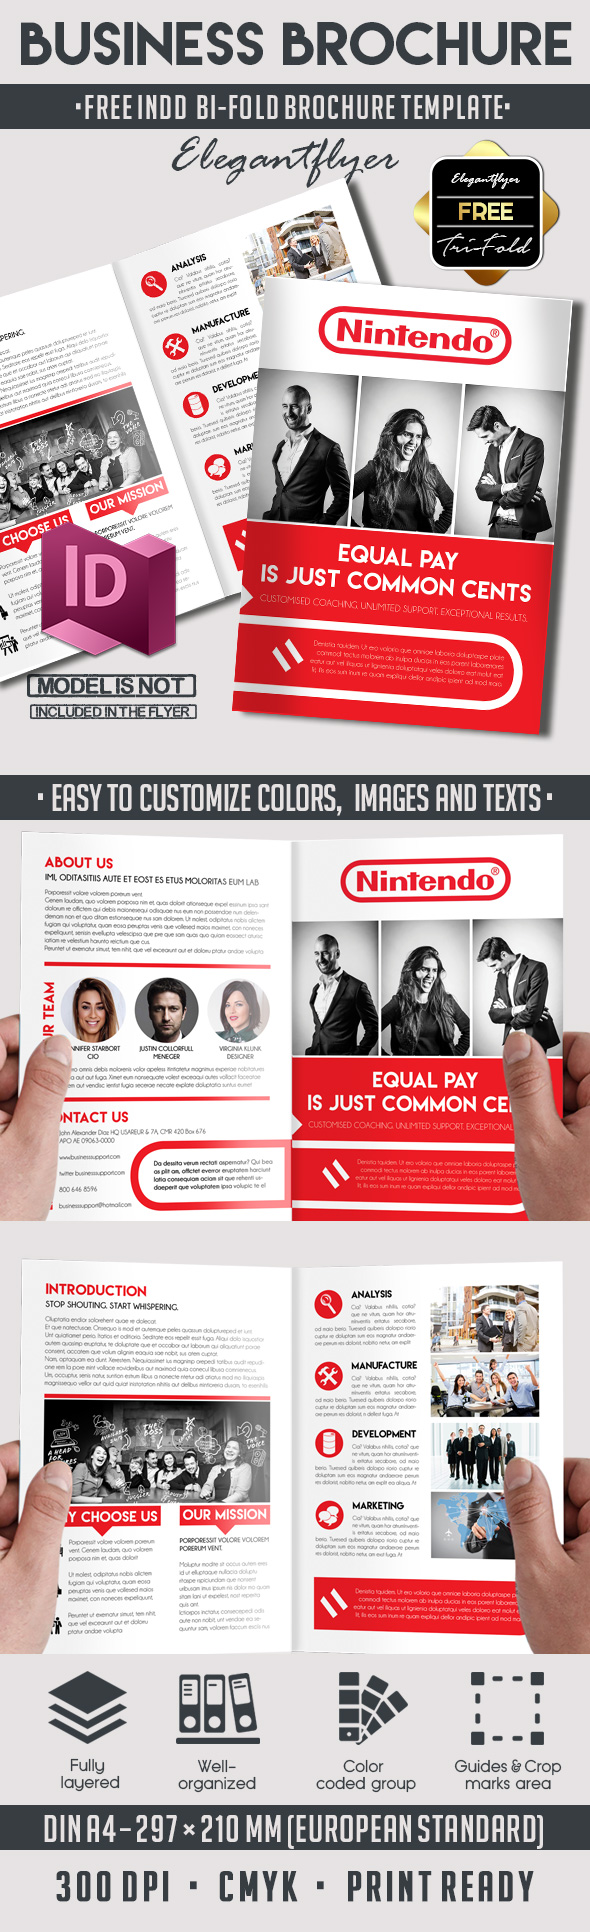 indesign tri fold brochure template - 5 powerful free adobe indesign brochures templates by